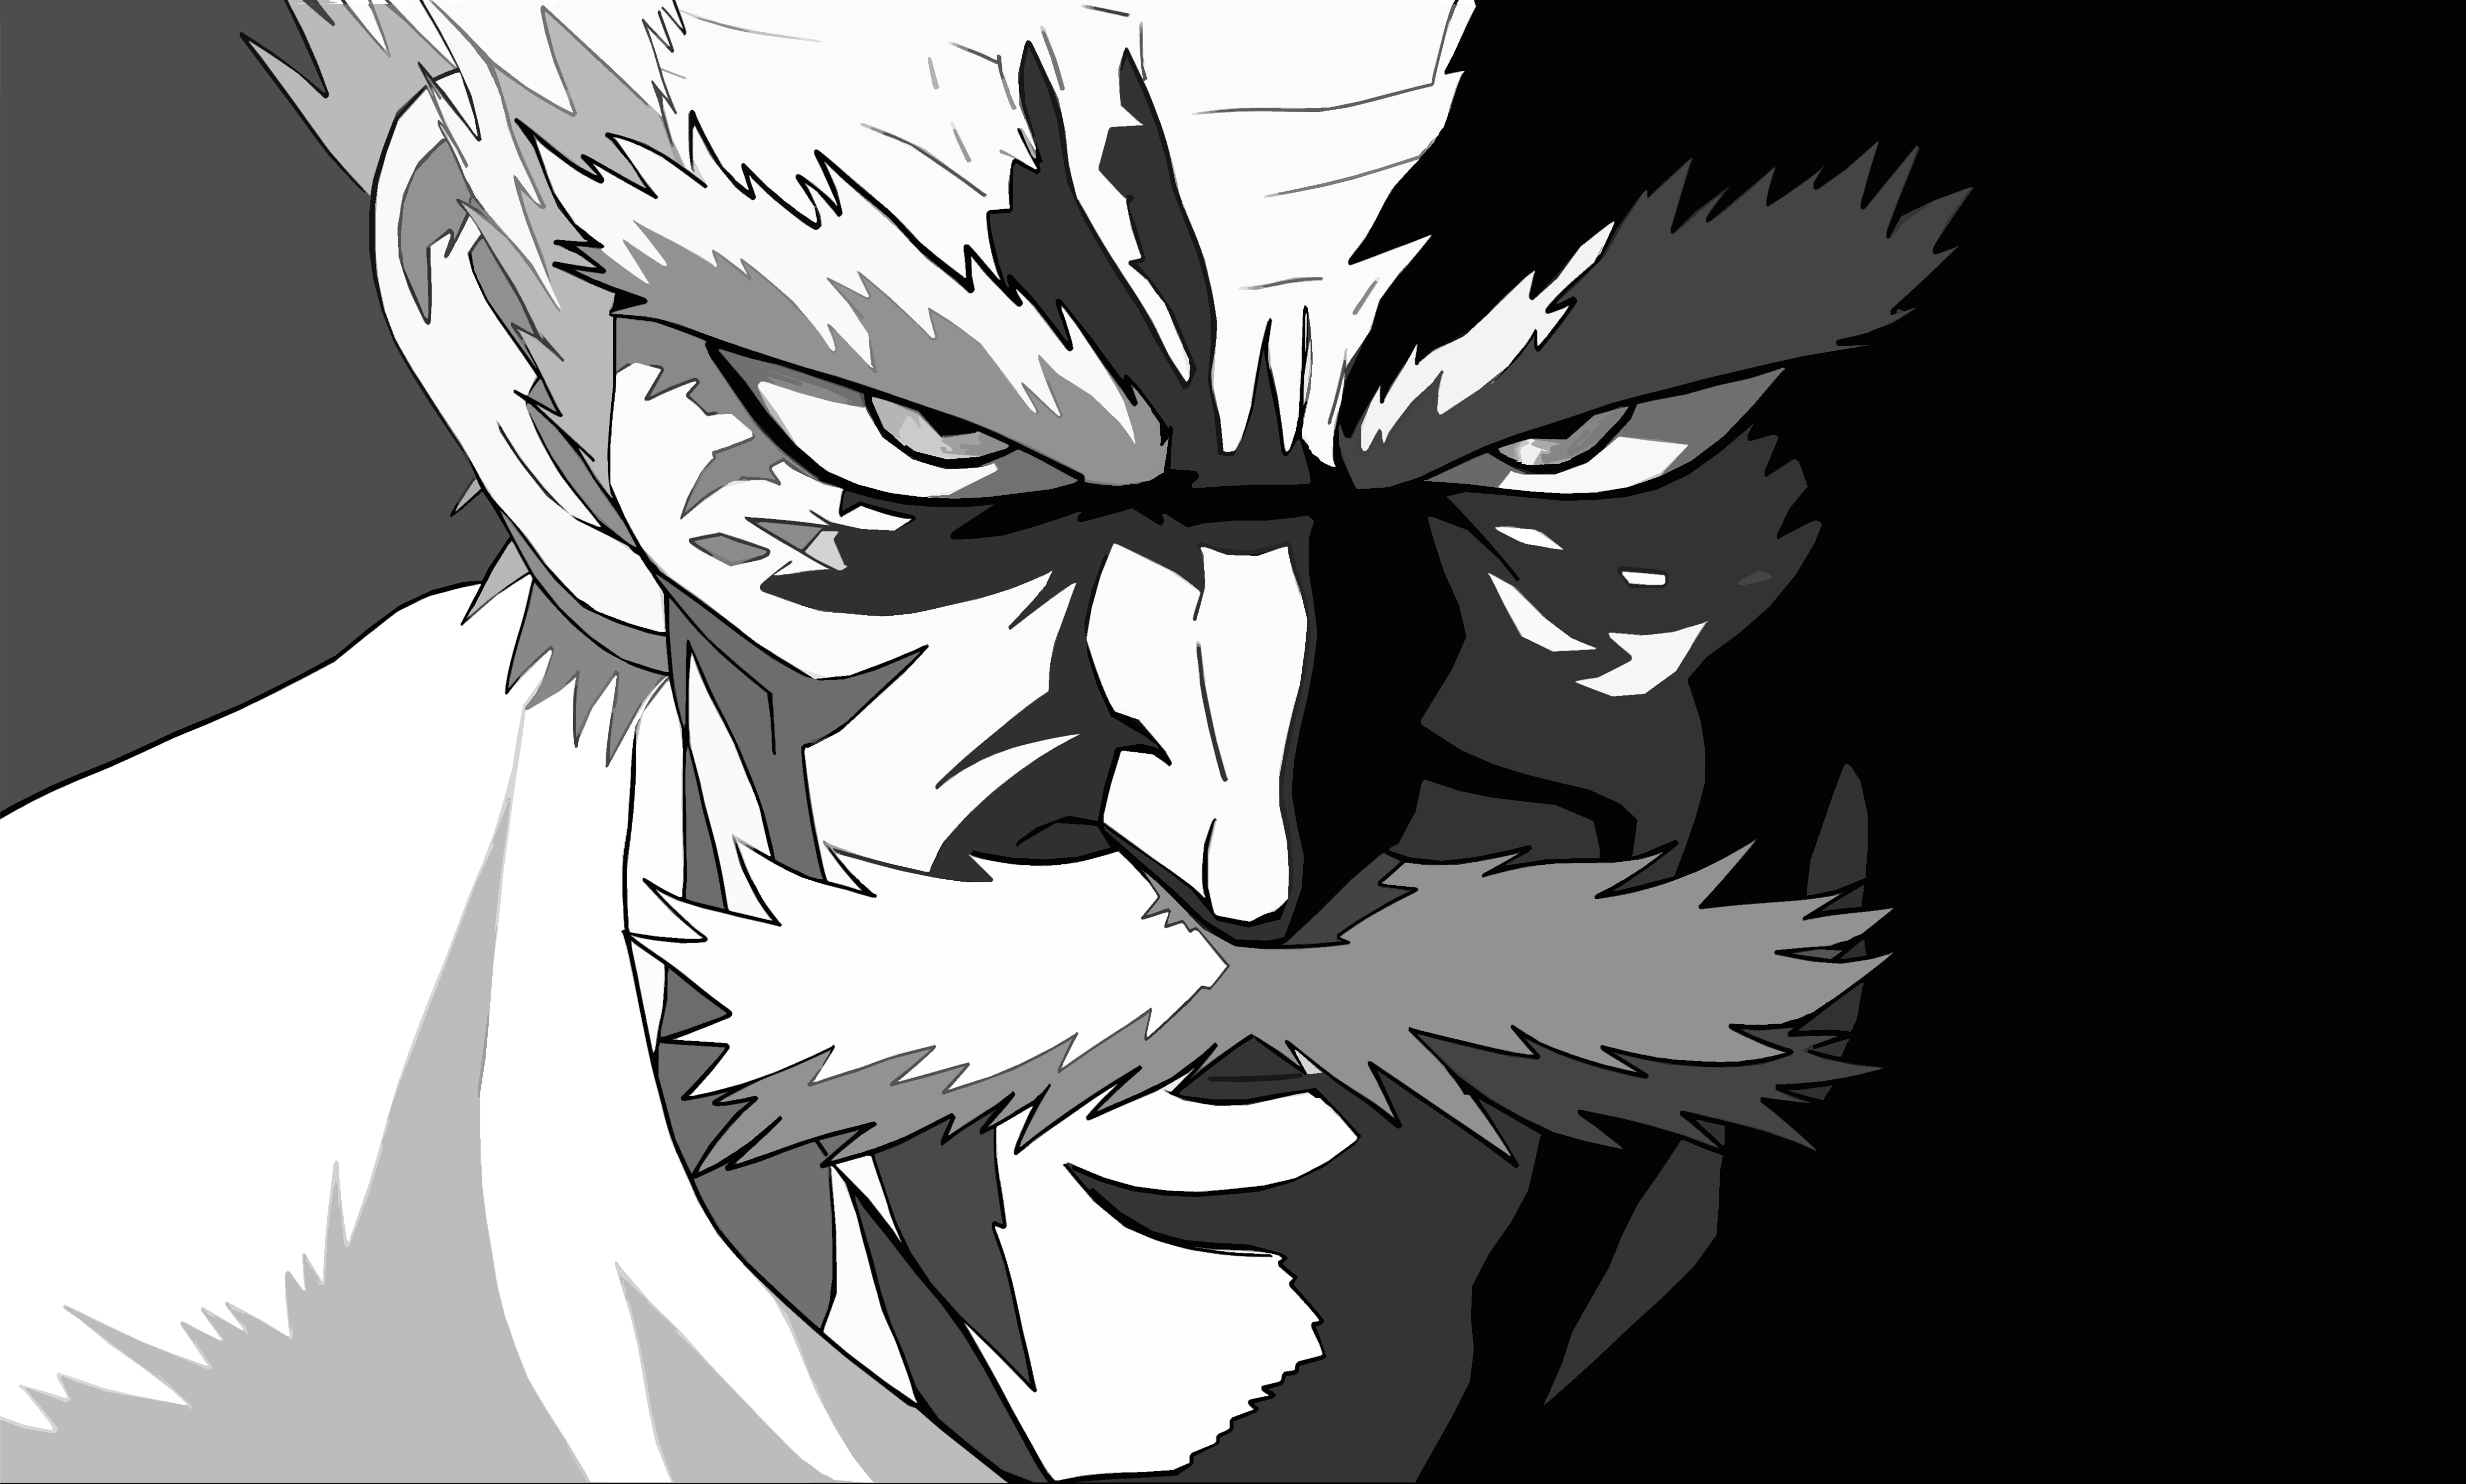 onepunch man 4k ultra hd wallpaper and background image